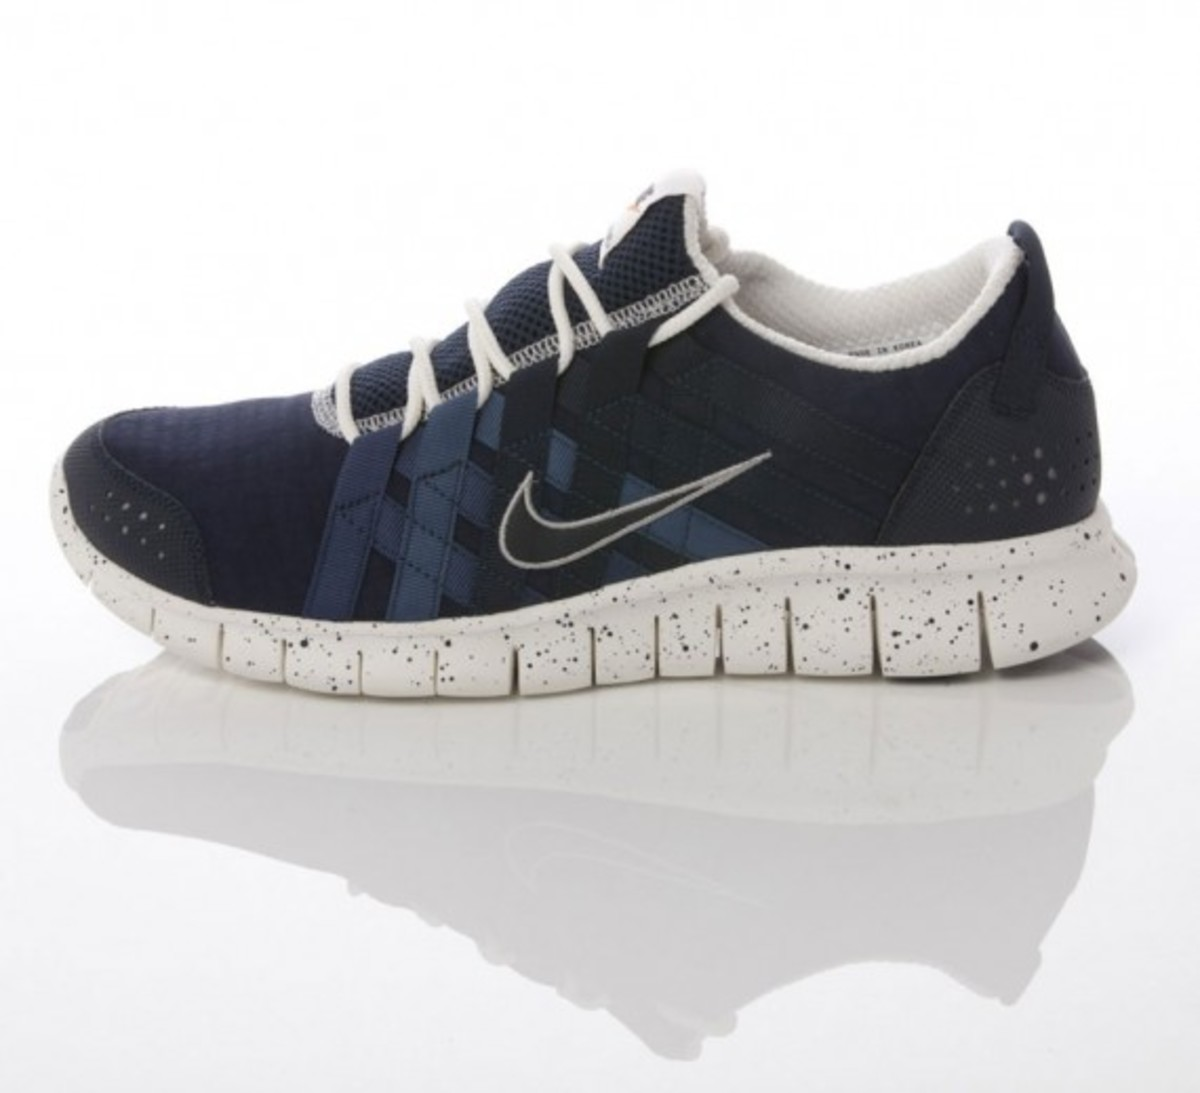 nike-sportswear-grey-navy-collection-11